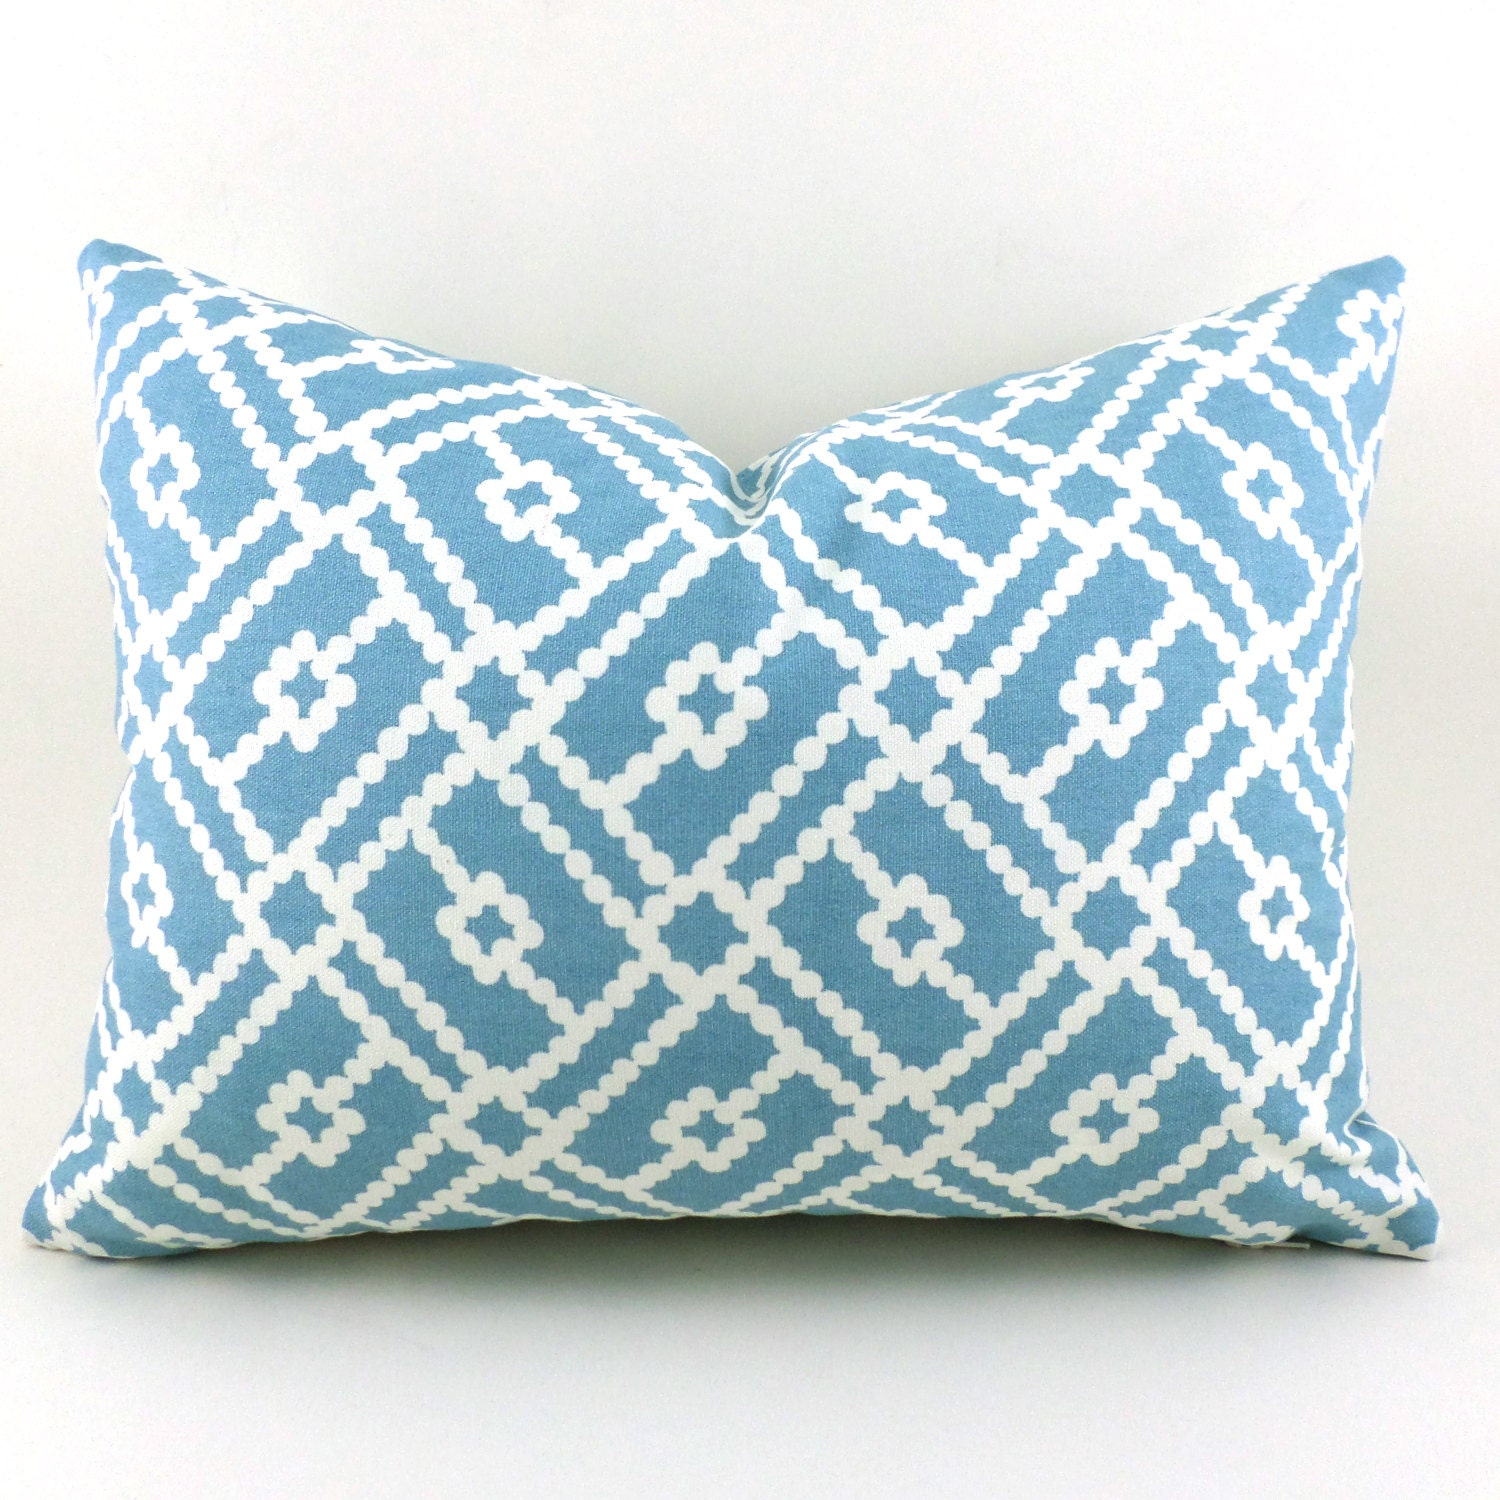 Throw Pillow Cover Measurements : Lumbar Pillow Cover ANY SIZE Decorative Pillow Cover Pillows